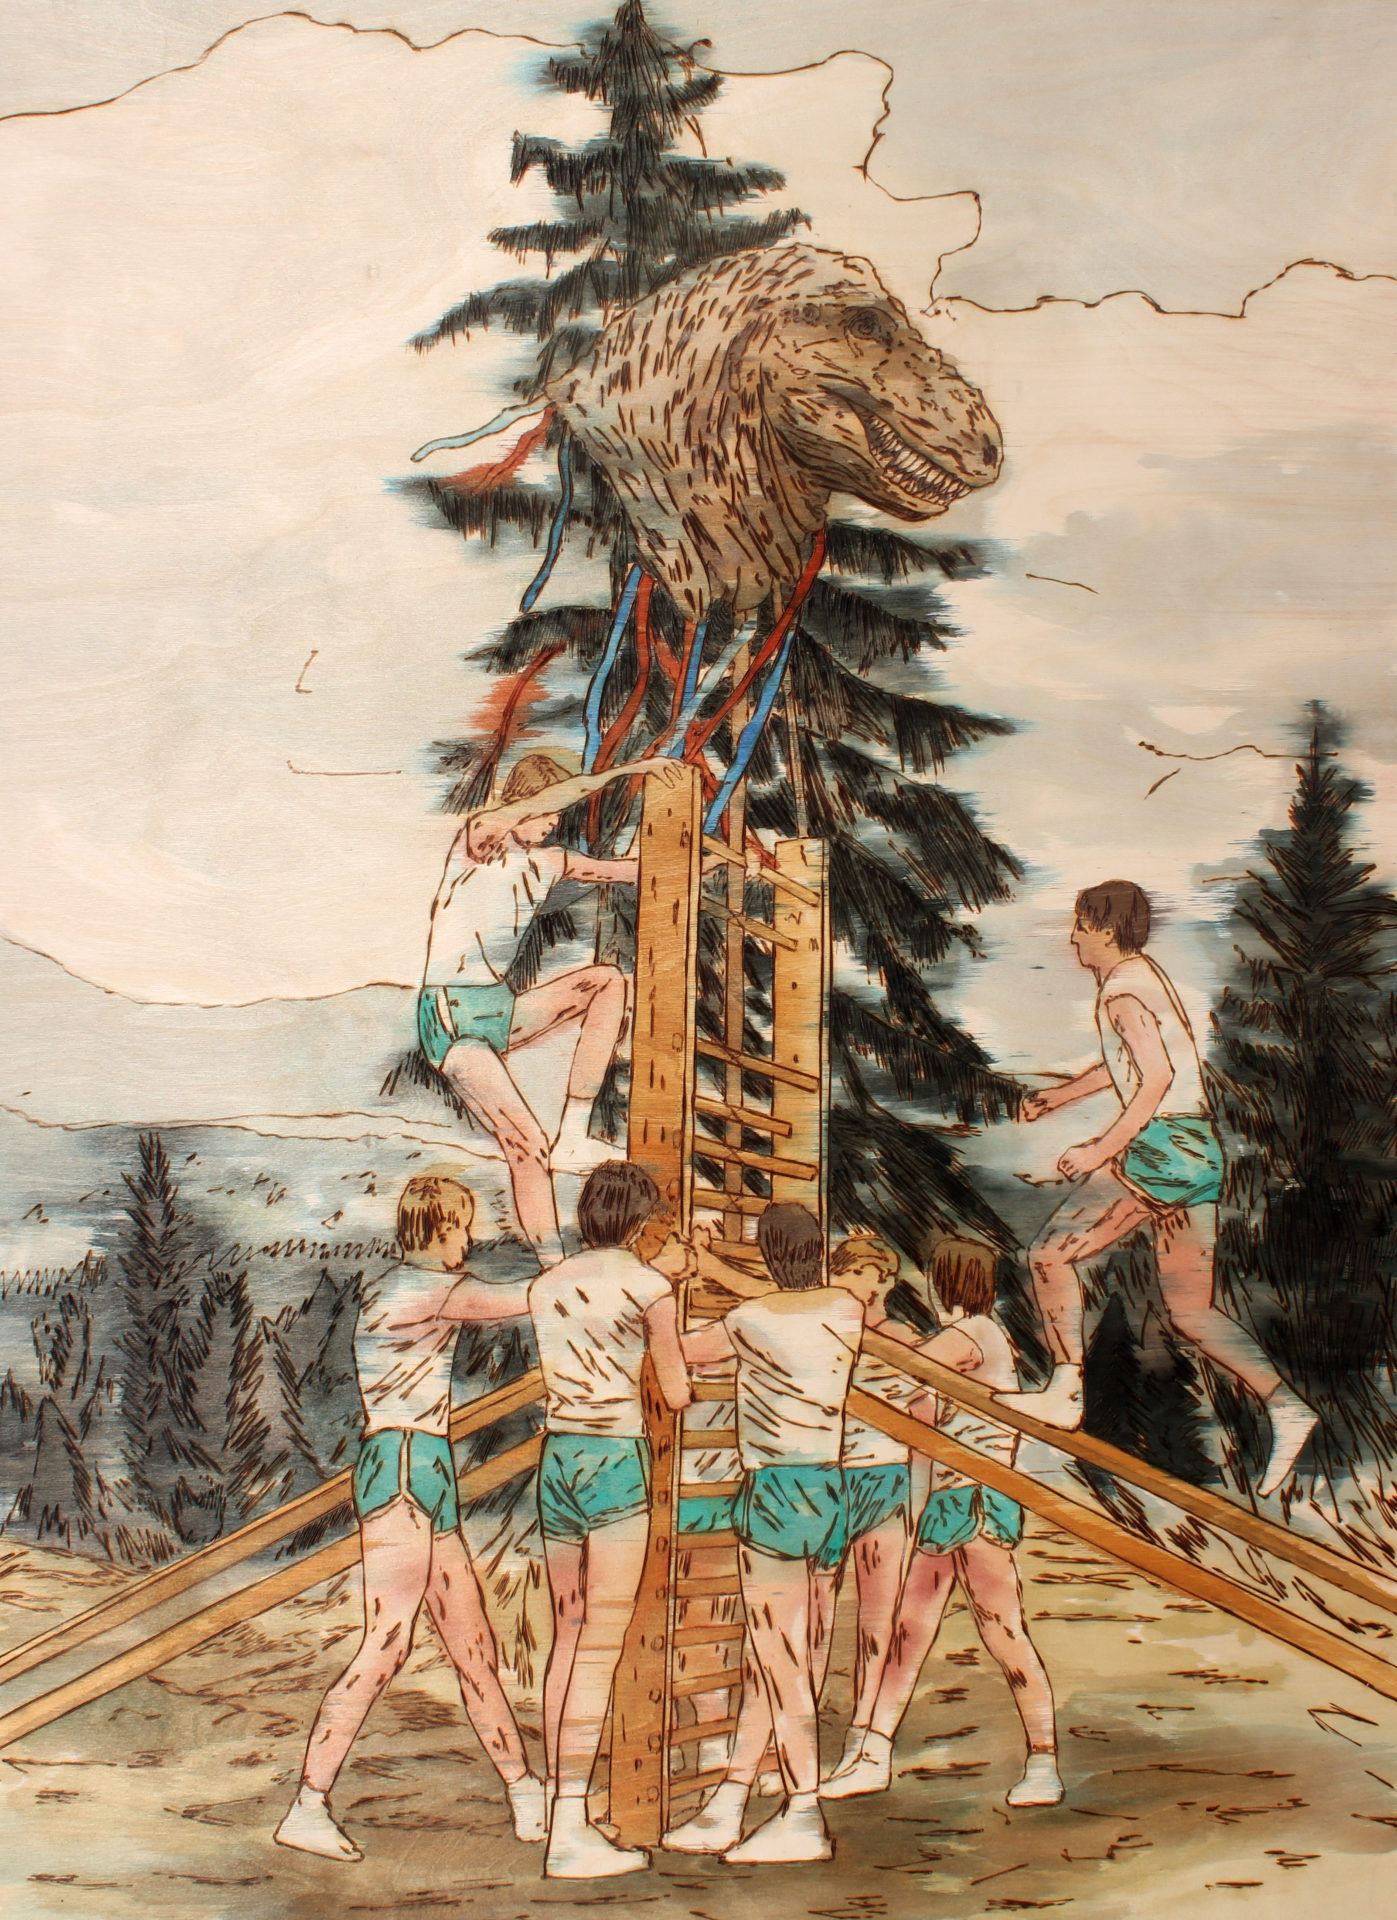 Celebrating Dominance of Mankind on Earth, 125 x 90 cm, pyrography on plywood, wood stains, 2019